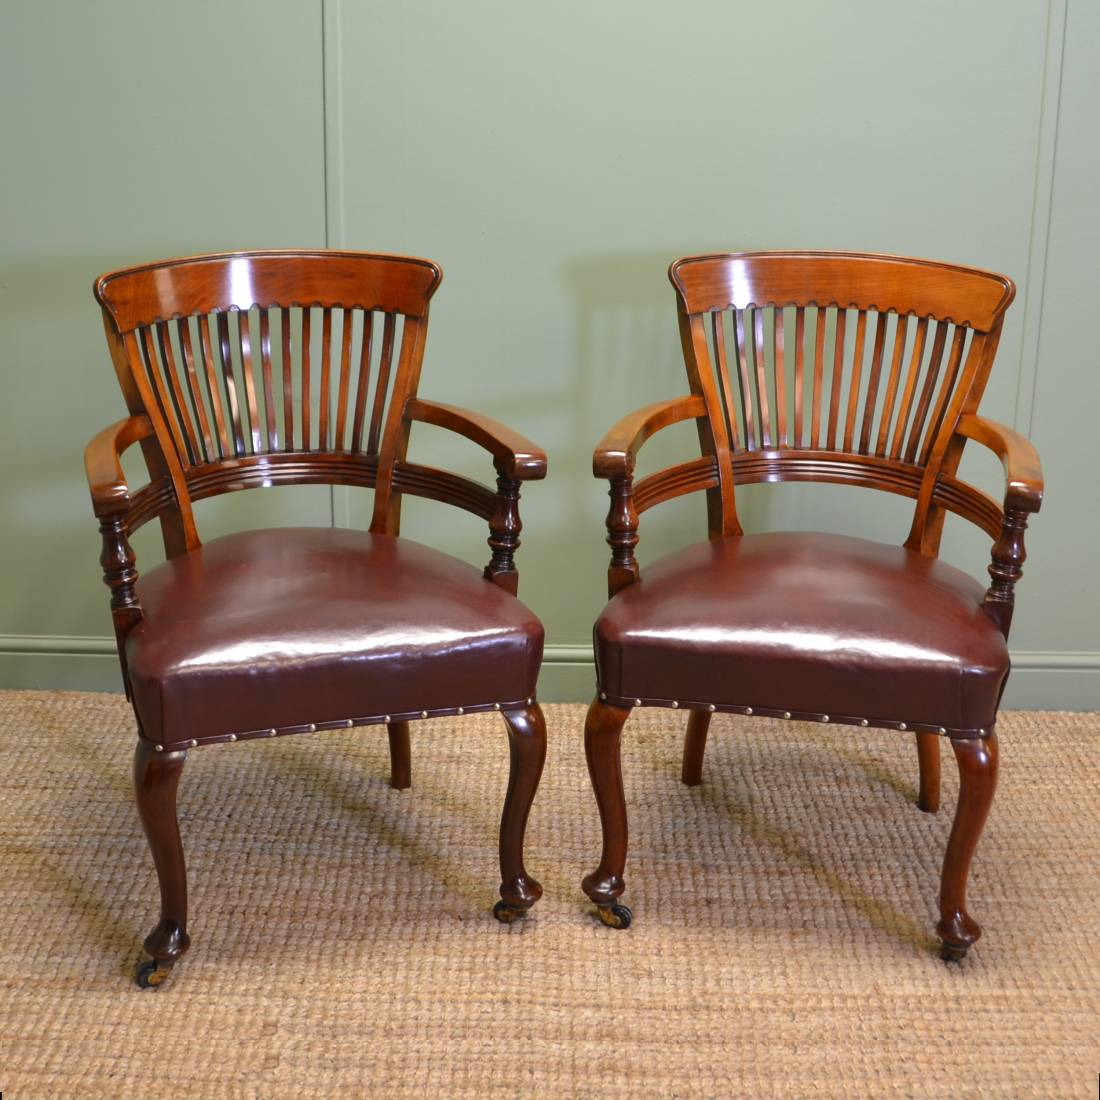 Office Furniture Bench: Fabulous Quality Victorian Solid Walnut Antique Pair Of